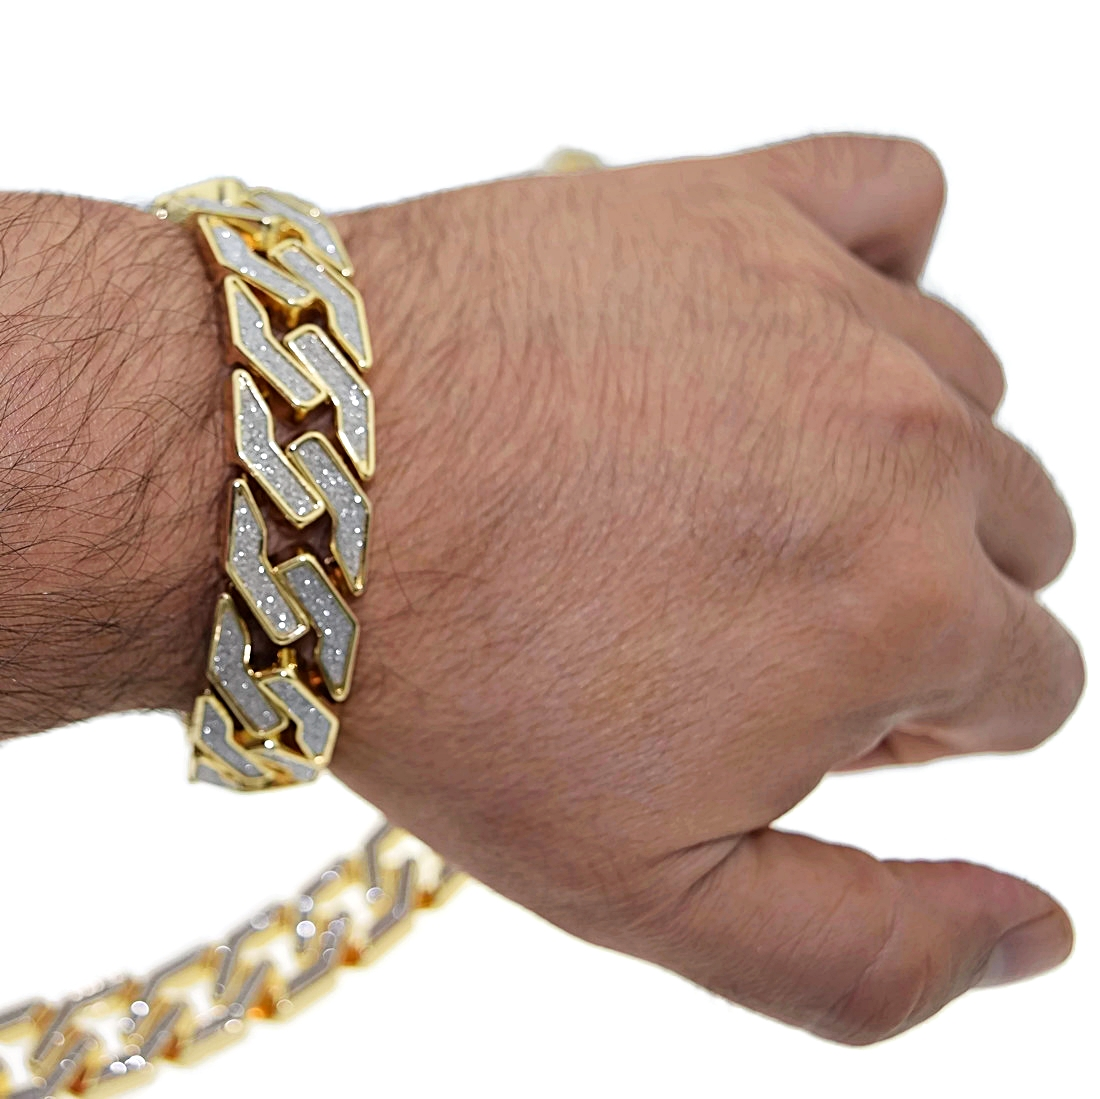 20MM Gold Chain Bracelet - Chains